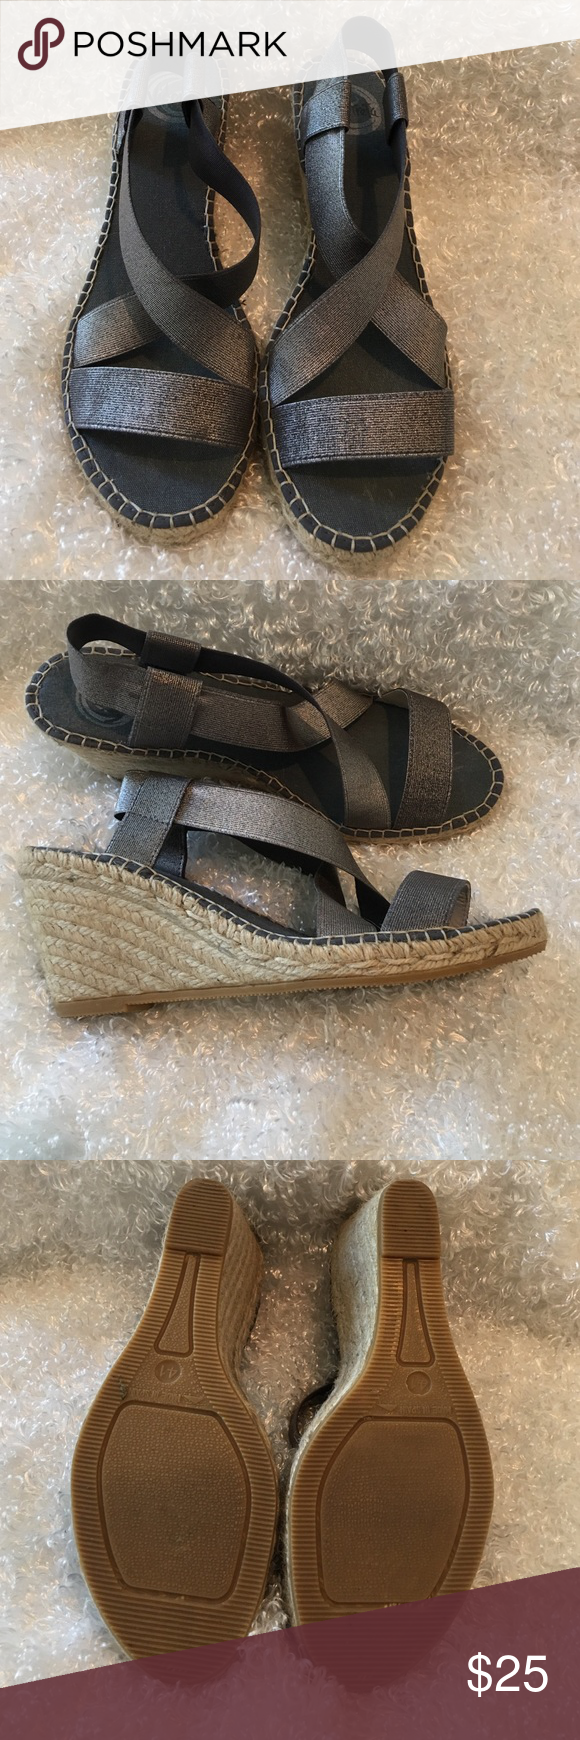 JJILL strapped sandals I have worn these shoes maybe twice. They make me taller than my husband😄. They are JJILL wedges in excellent condition. J. Jill Shoes Wedges